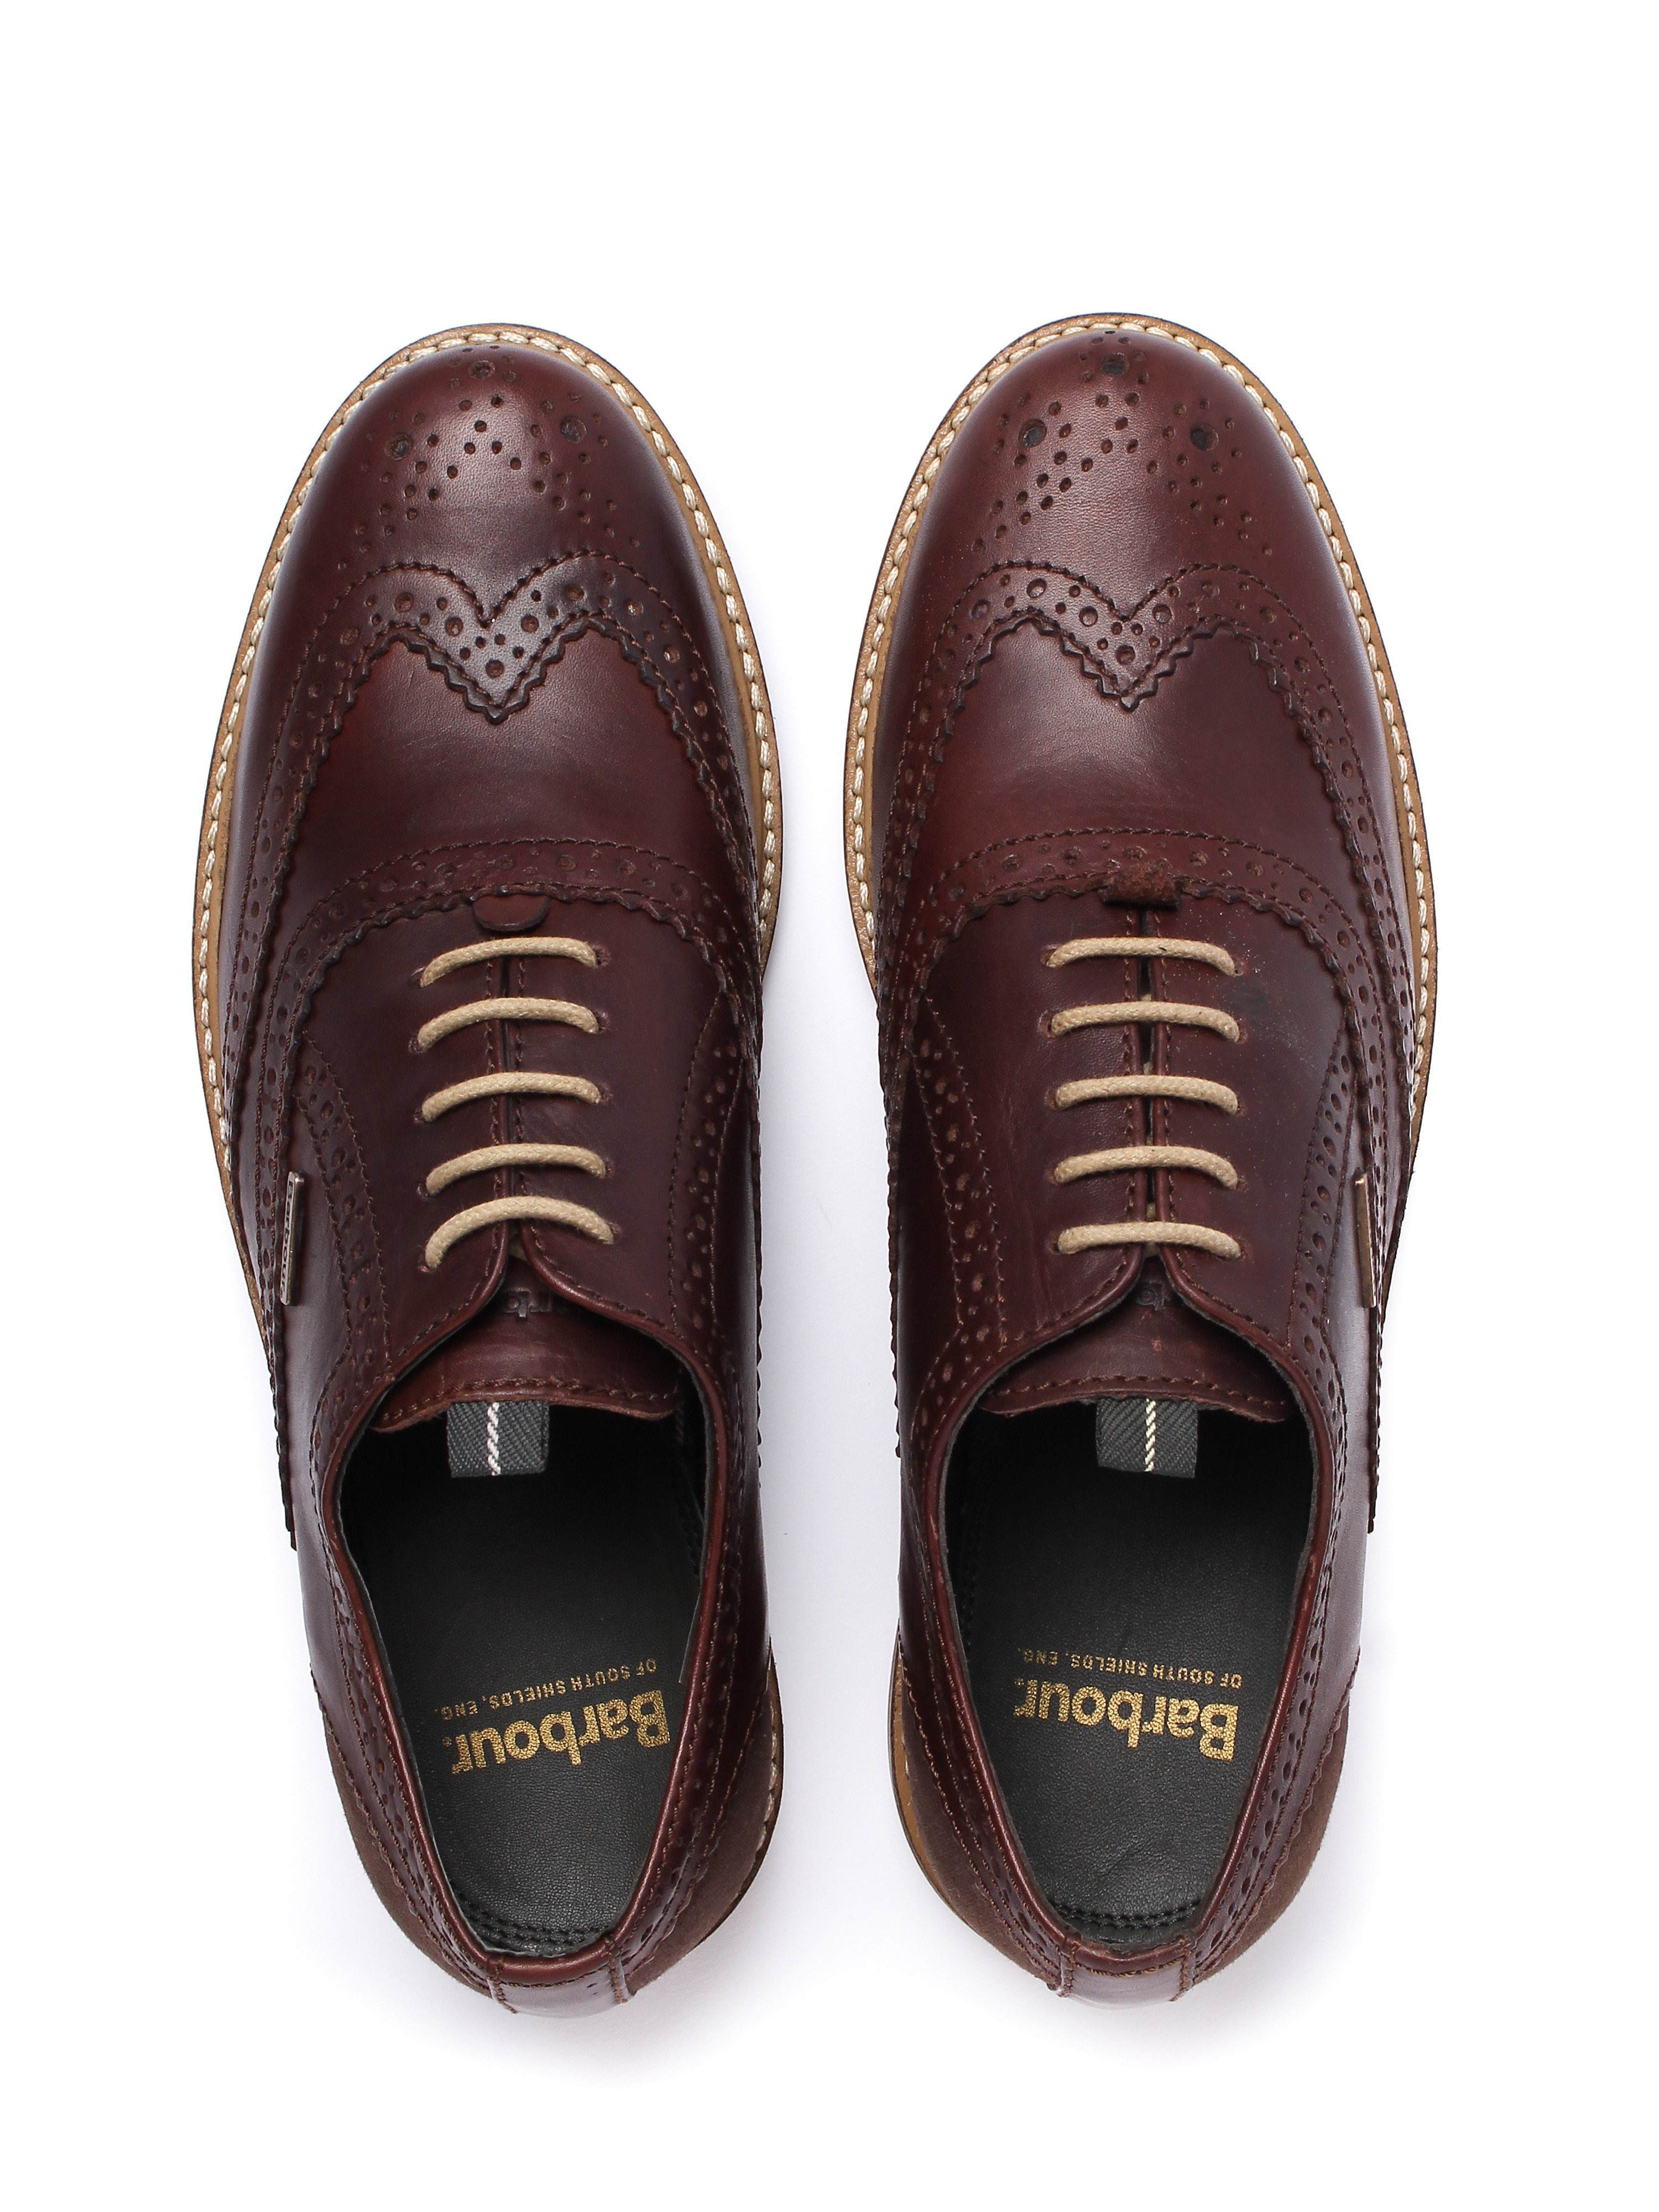 Barbour Men's Redcar Leather Oxford Brogues - Dark Brown